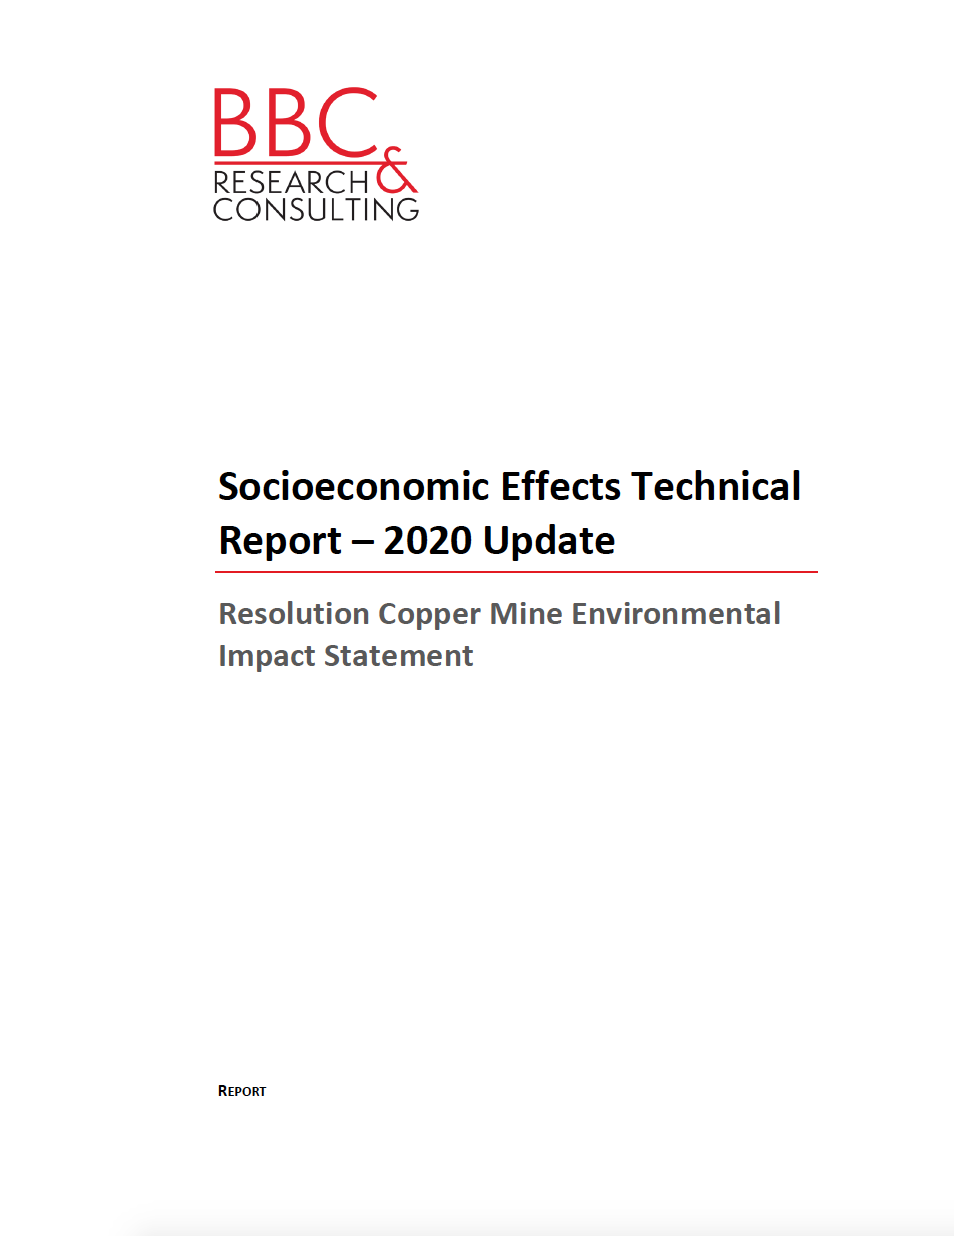 Thumbnail image of document cover: Socioeconomic Effects Technical Report - 2020 Update